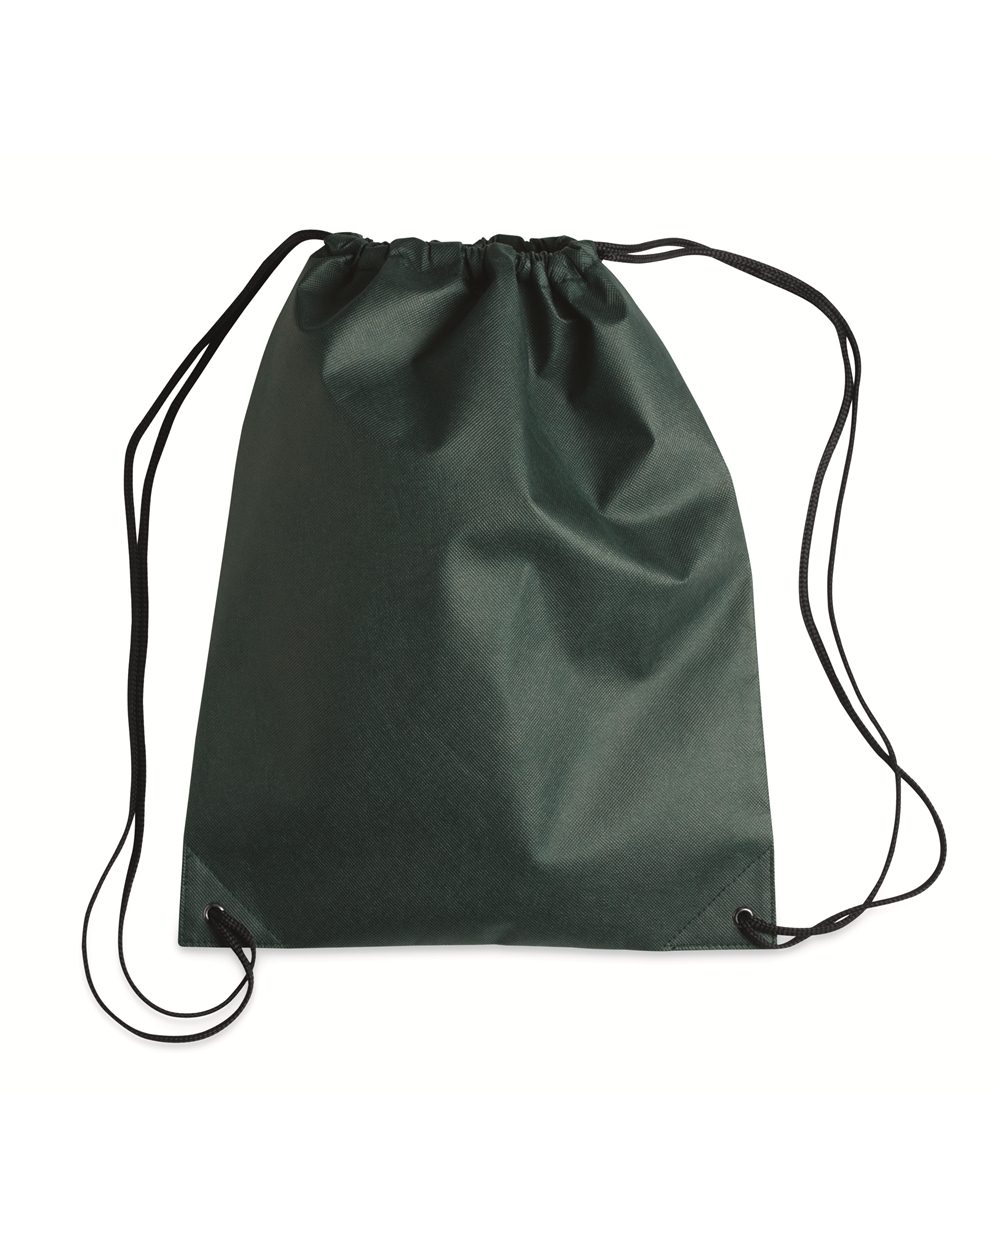 Liberty Bags A136 - Non-Woven Drawstring Backpack